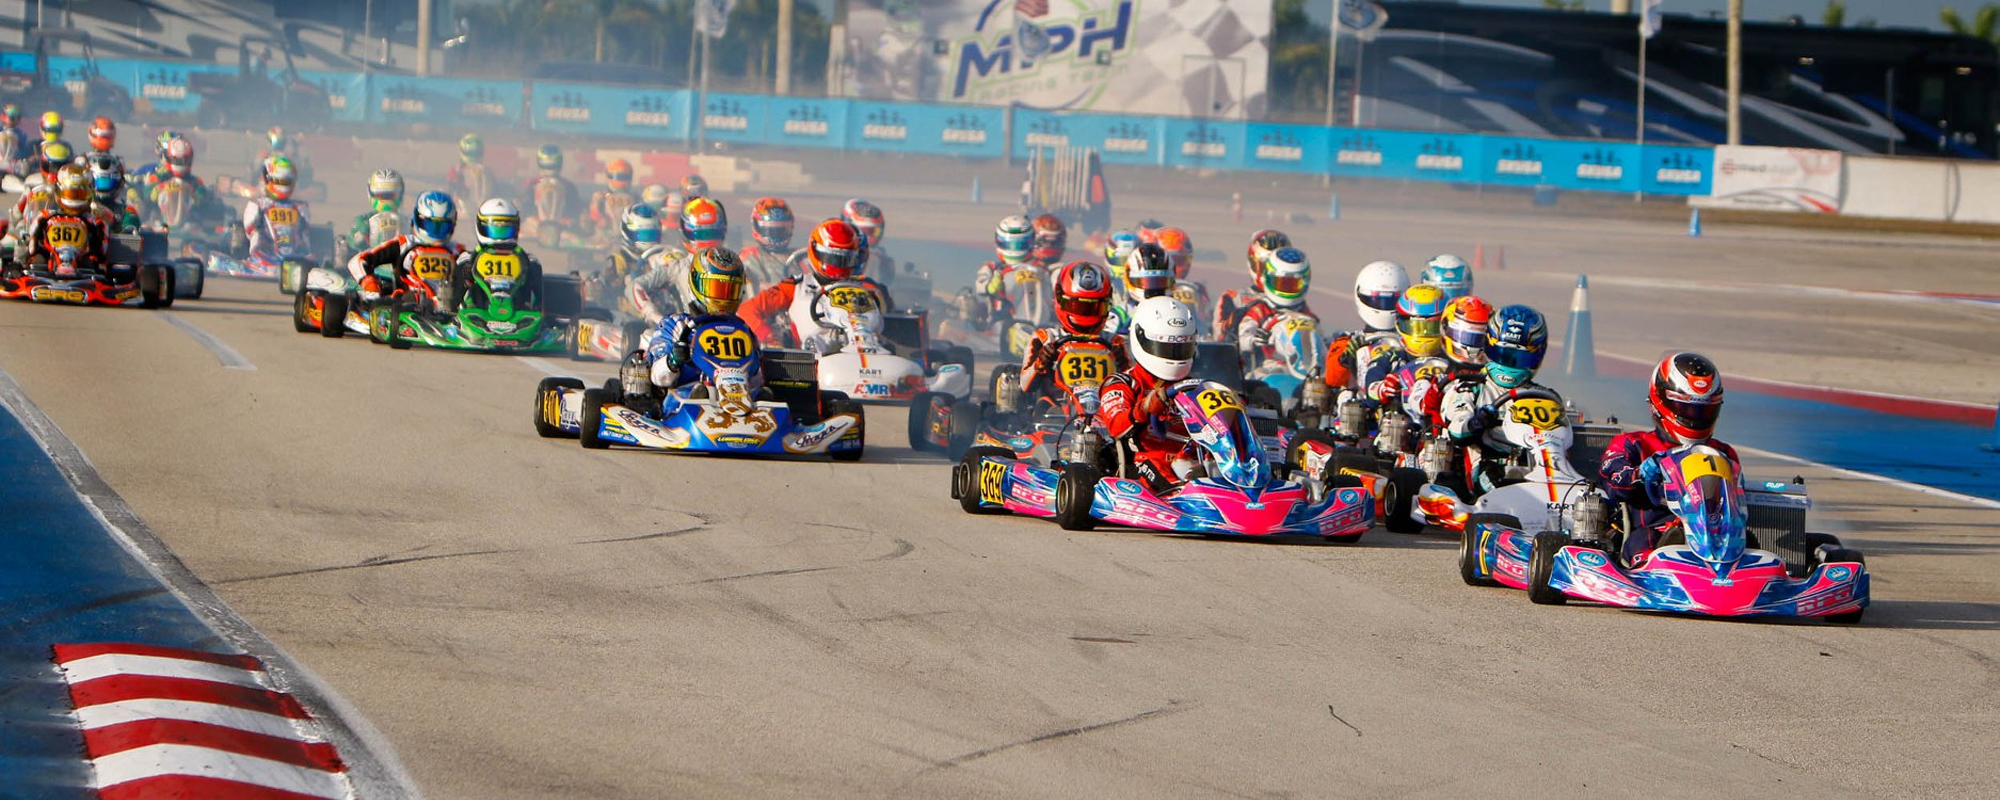 December 15 | Karting Challenge by MG Rd. 10